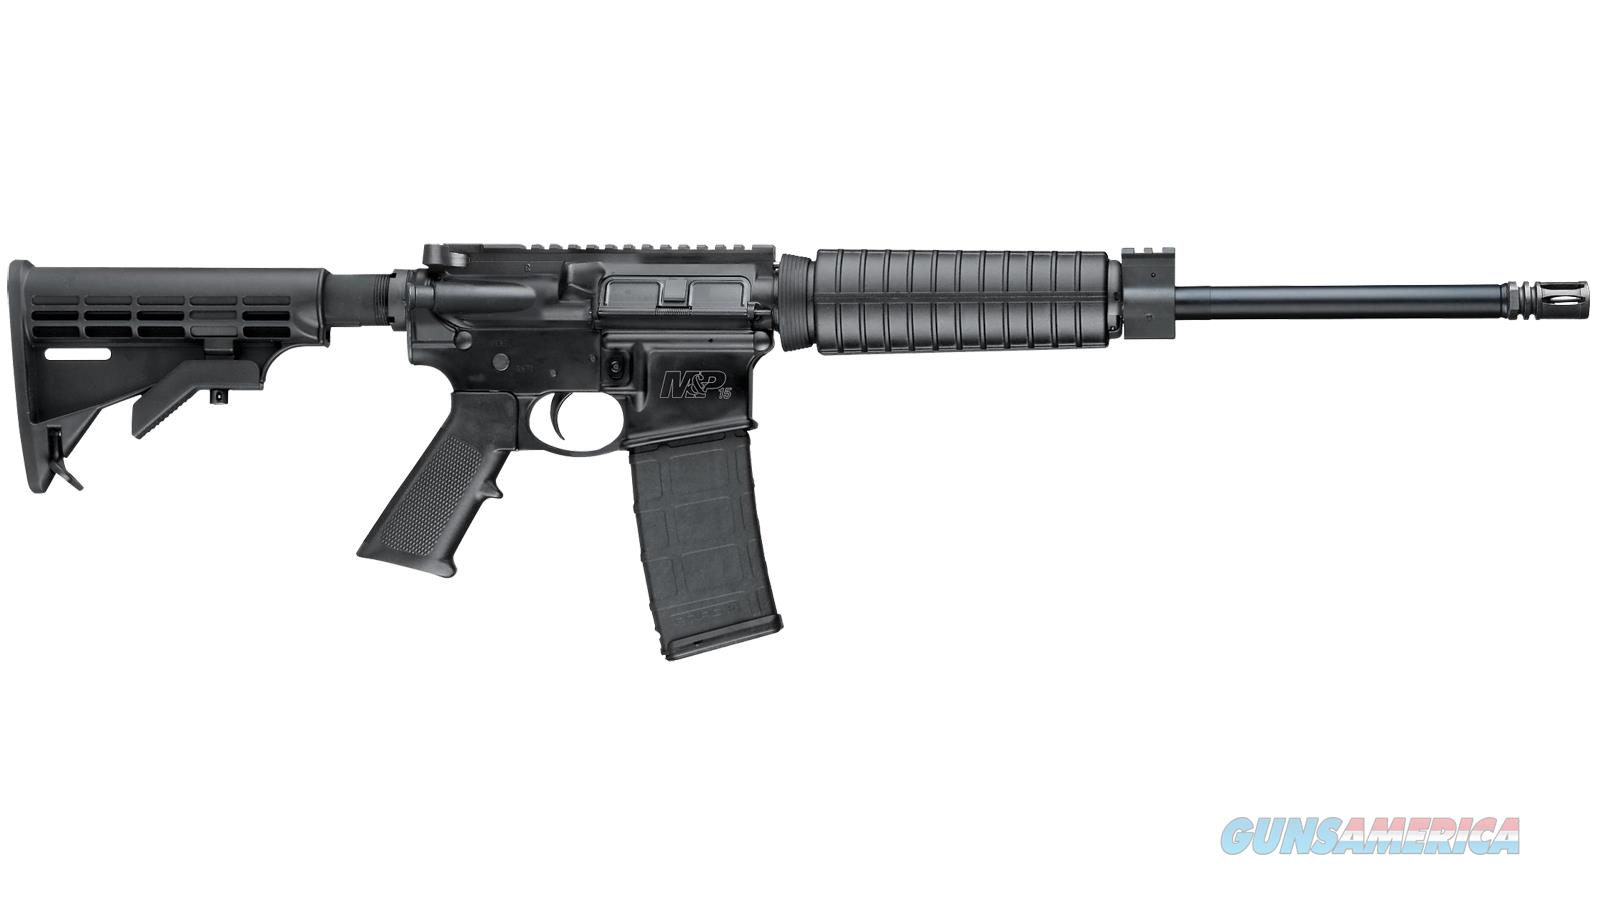 """Smith & Wesson M&P 15 Sport Ii Or Semi-Auto Rifle, 5.56 Nato, 16"""" Bbl, 30-Rnd, 6-Postion Adjustable Stock, 10159  Guns > Rifles > S Misc Rifles"""